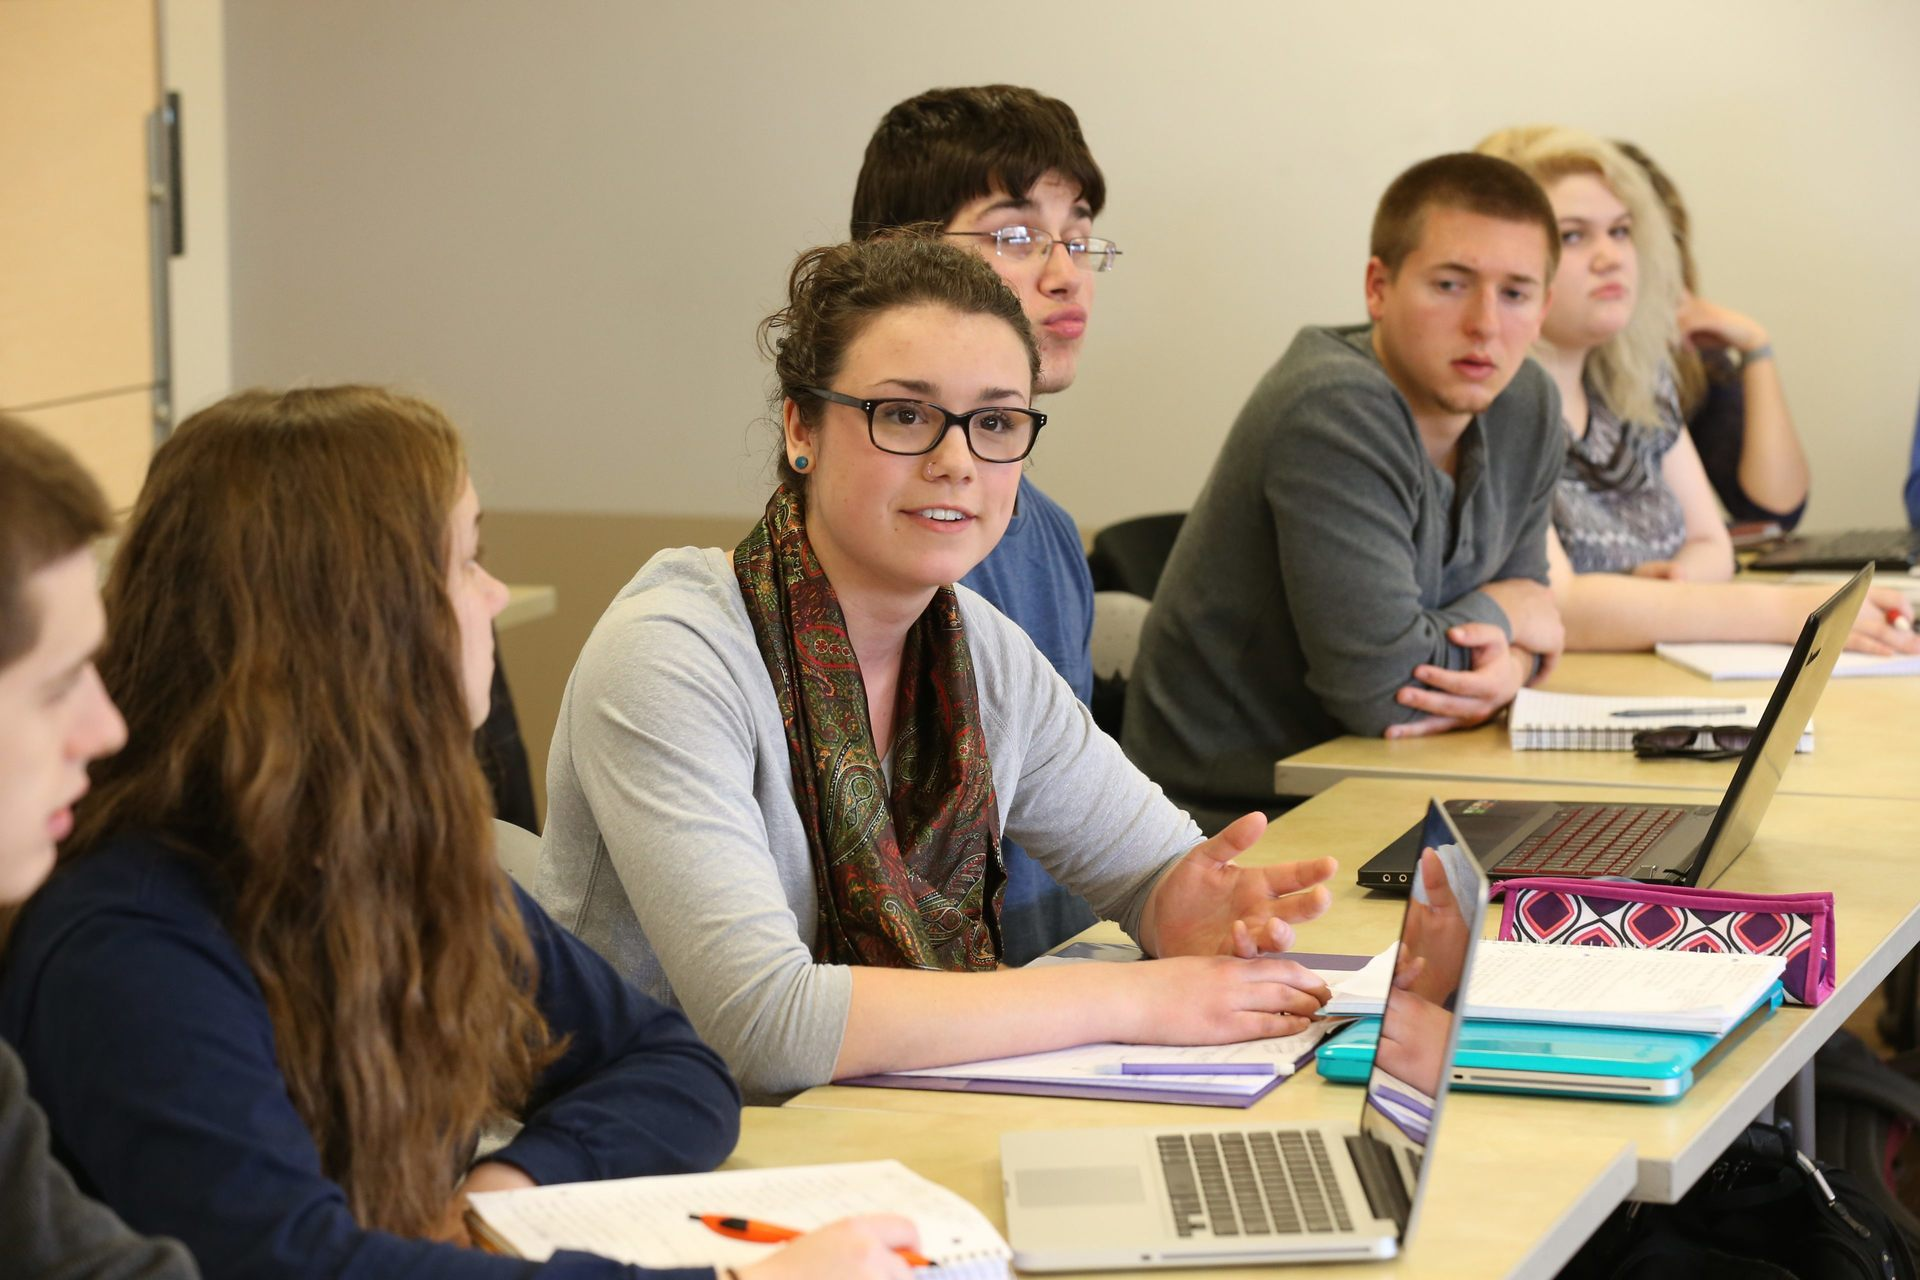 A BGSU graduate class discussing subjects with diverse colleagues is often the most valued form of learning.